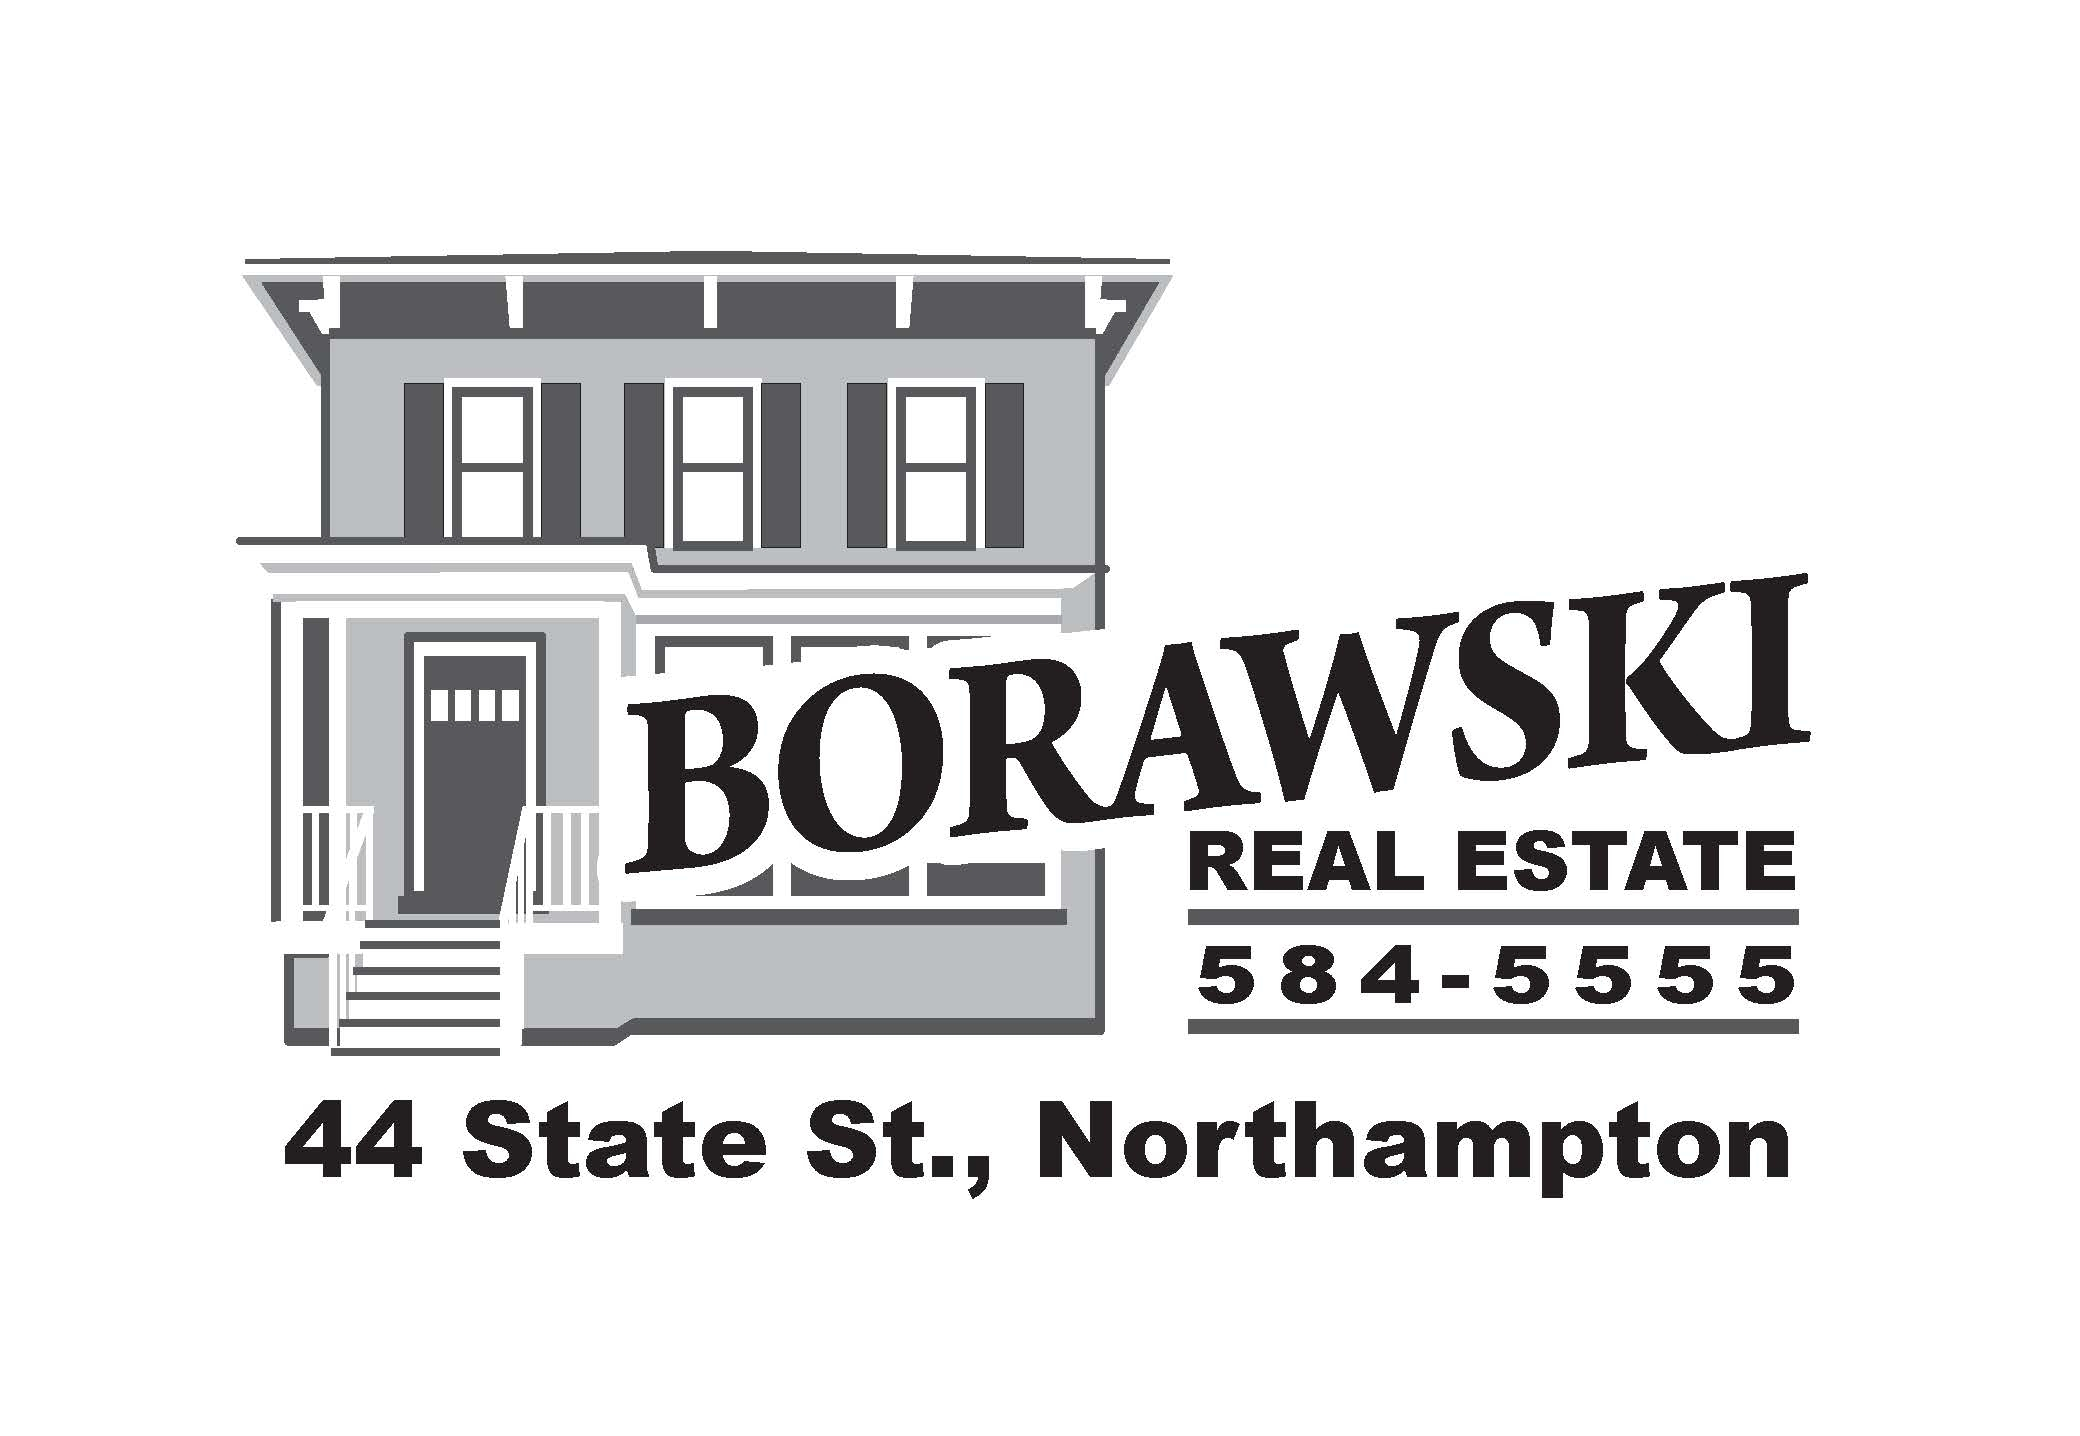 Borawski Real Estate